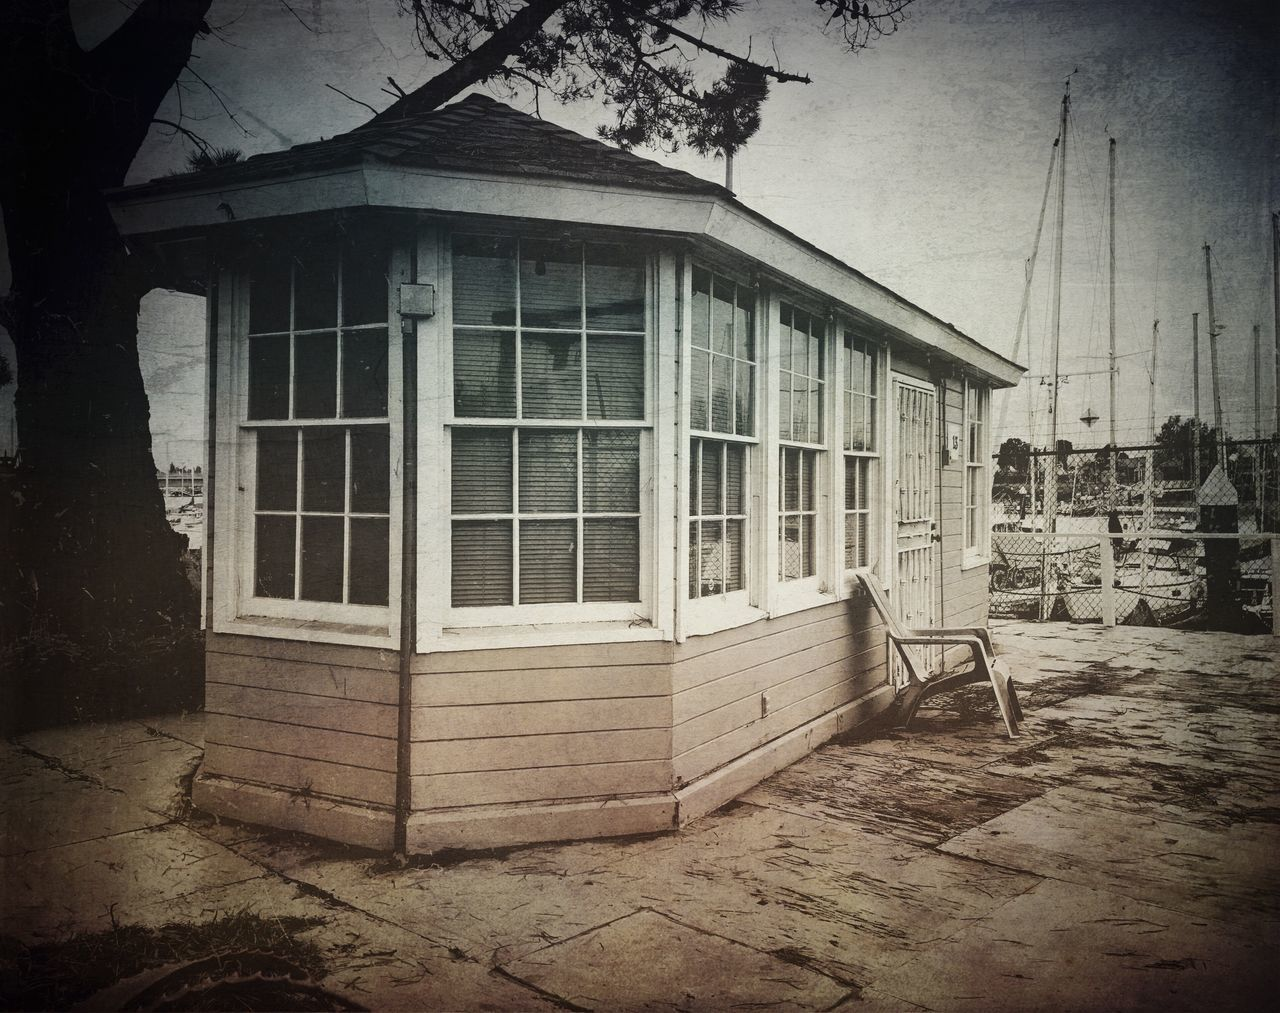 """""""Harbour Master"""" Tiny harbour master cabin at the Embarcadero Cove Public Marina in Oakland, California. Built Structure House Black And White Photography Marina Harbor Harbour Harbour View Harbour Life"""